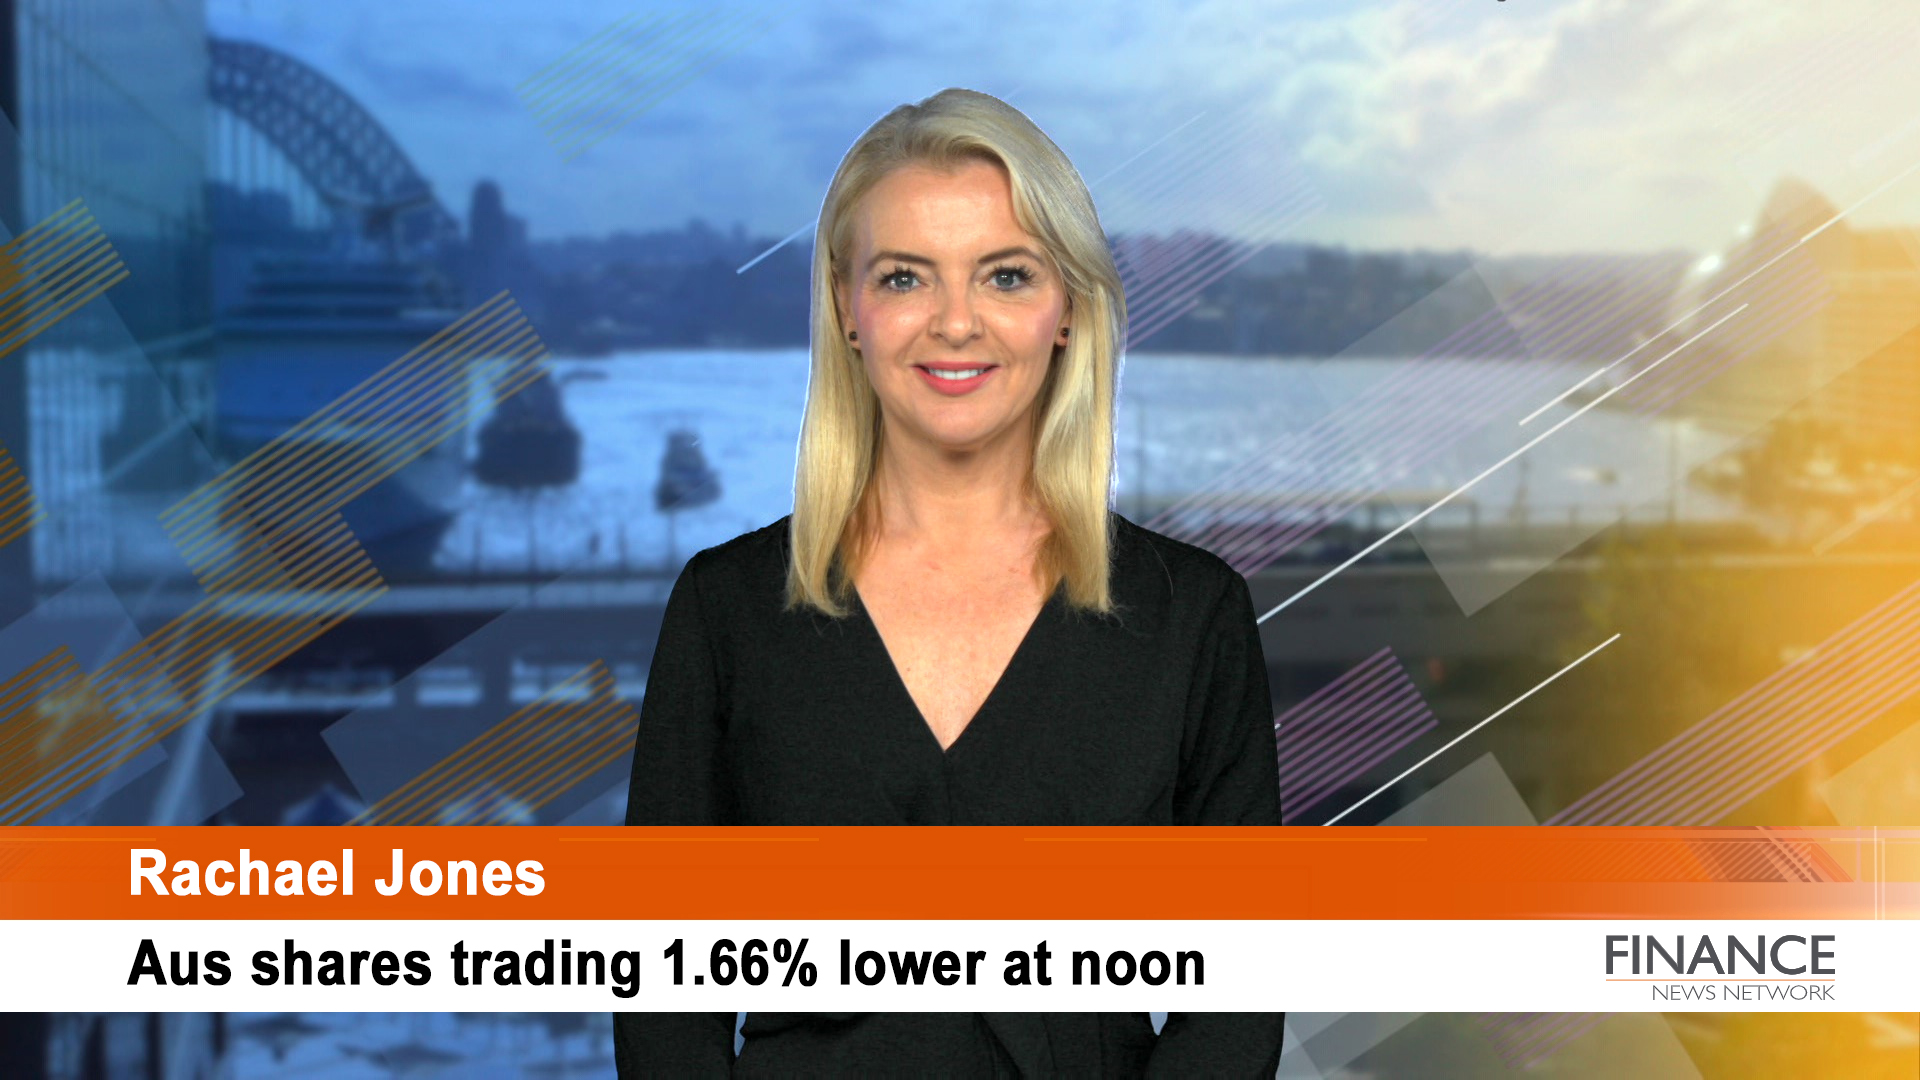 Two consecutive current account surpluses: ASX 1.7% lower at noon